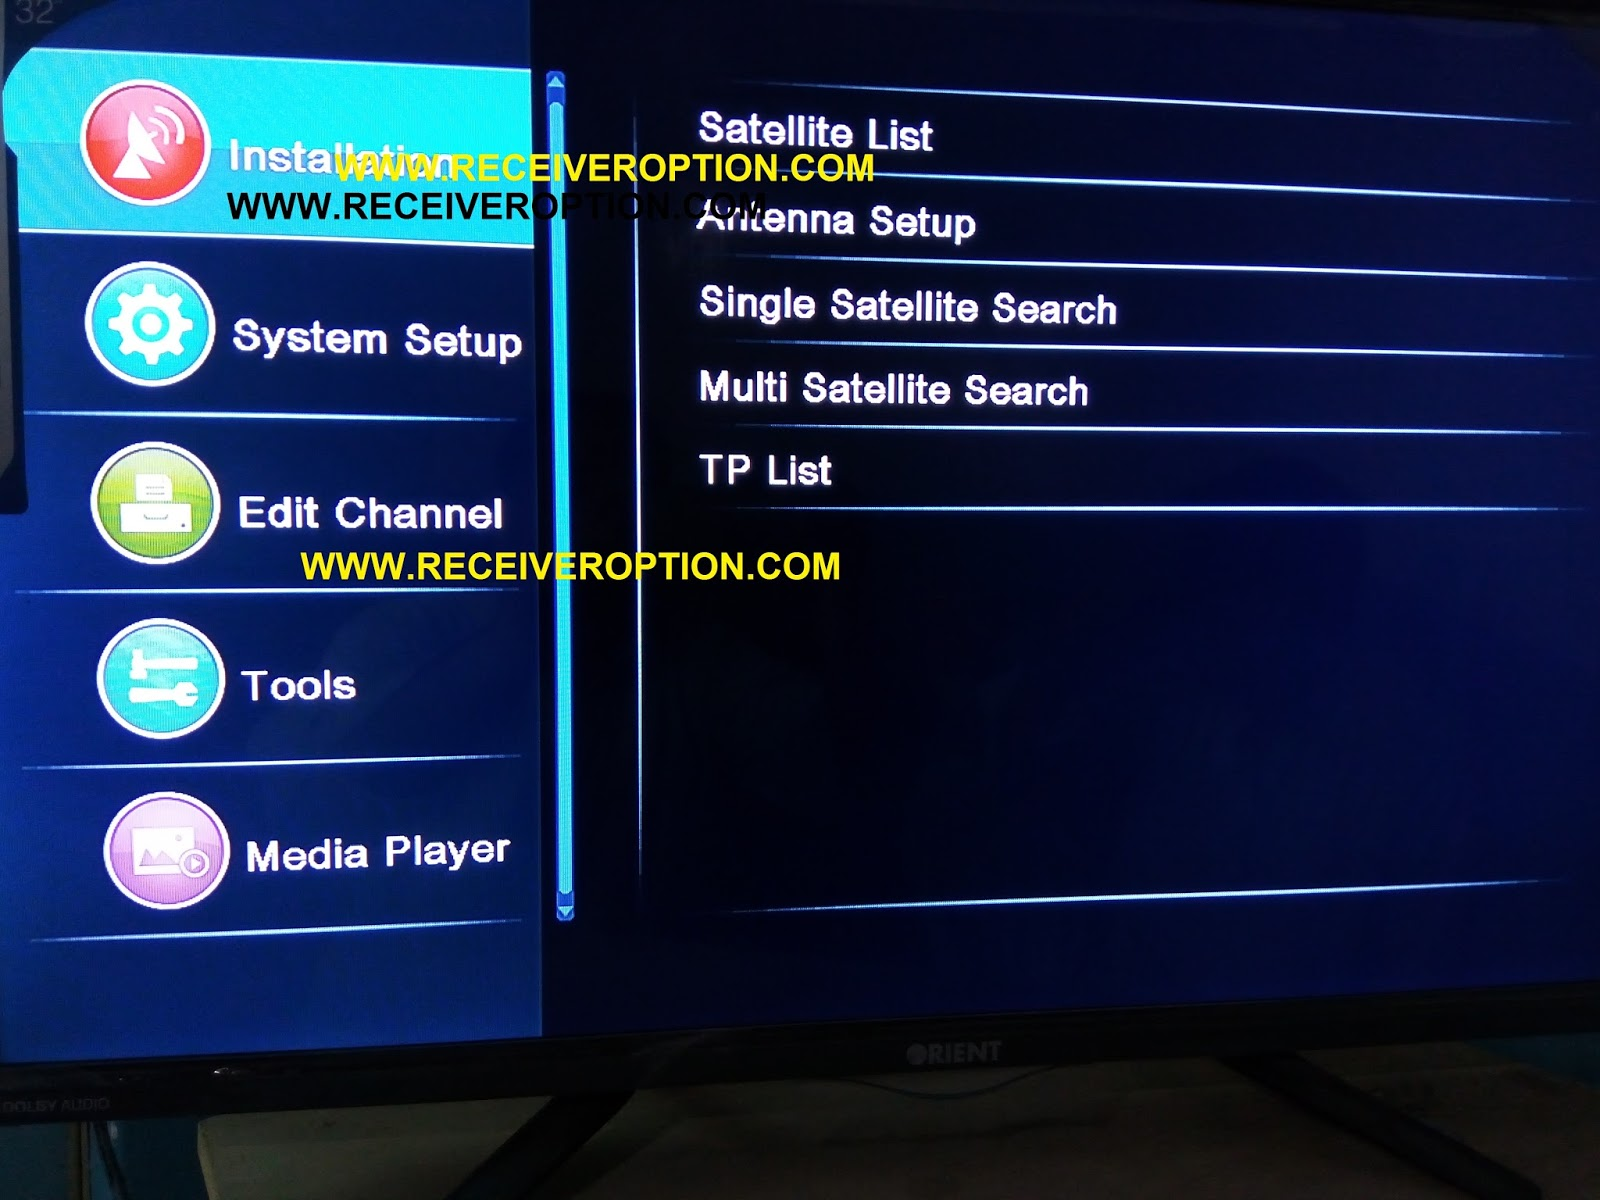 FIVE SAT GALAXY 6000 HD RECEIVER DUMP FILE - HOW TO ENTER